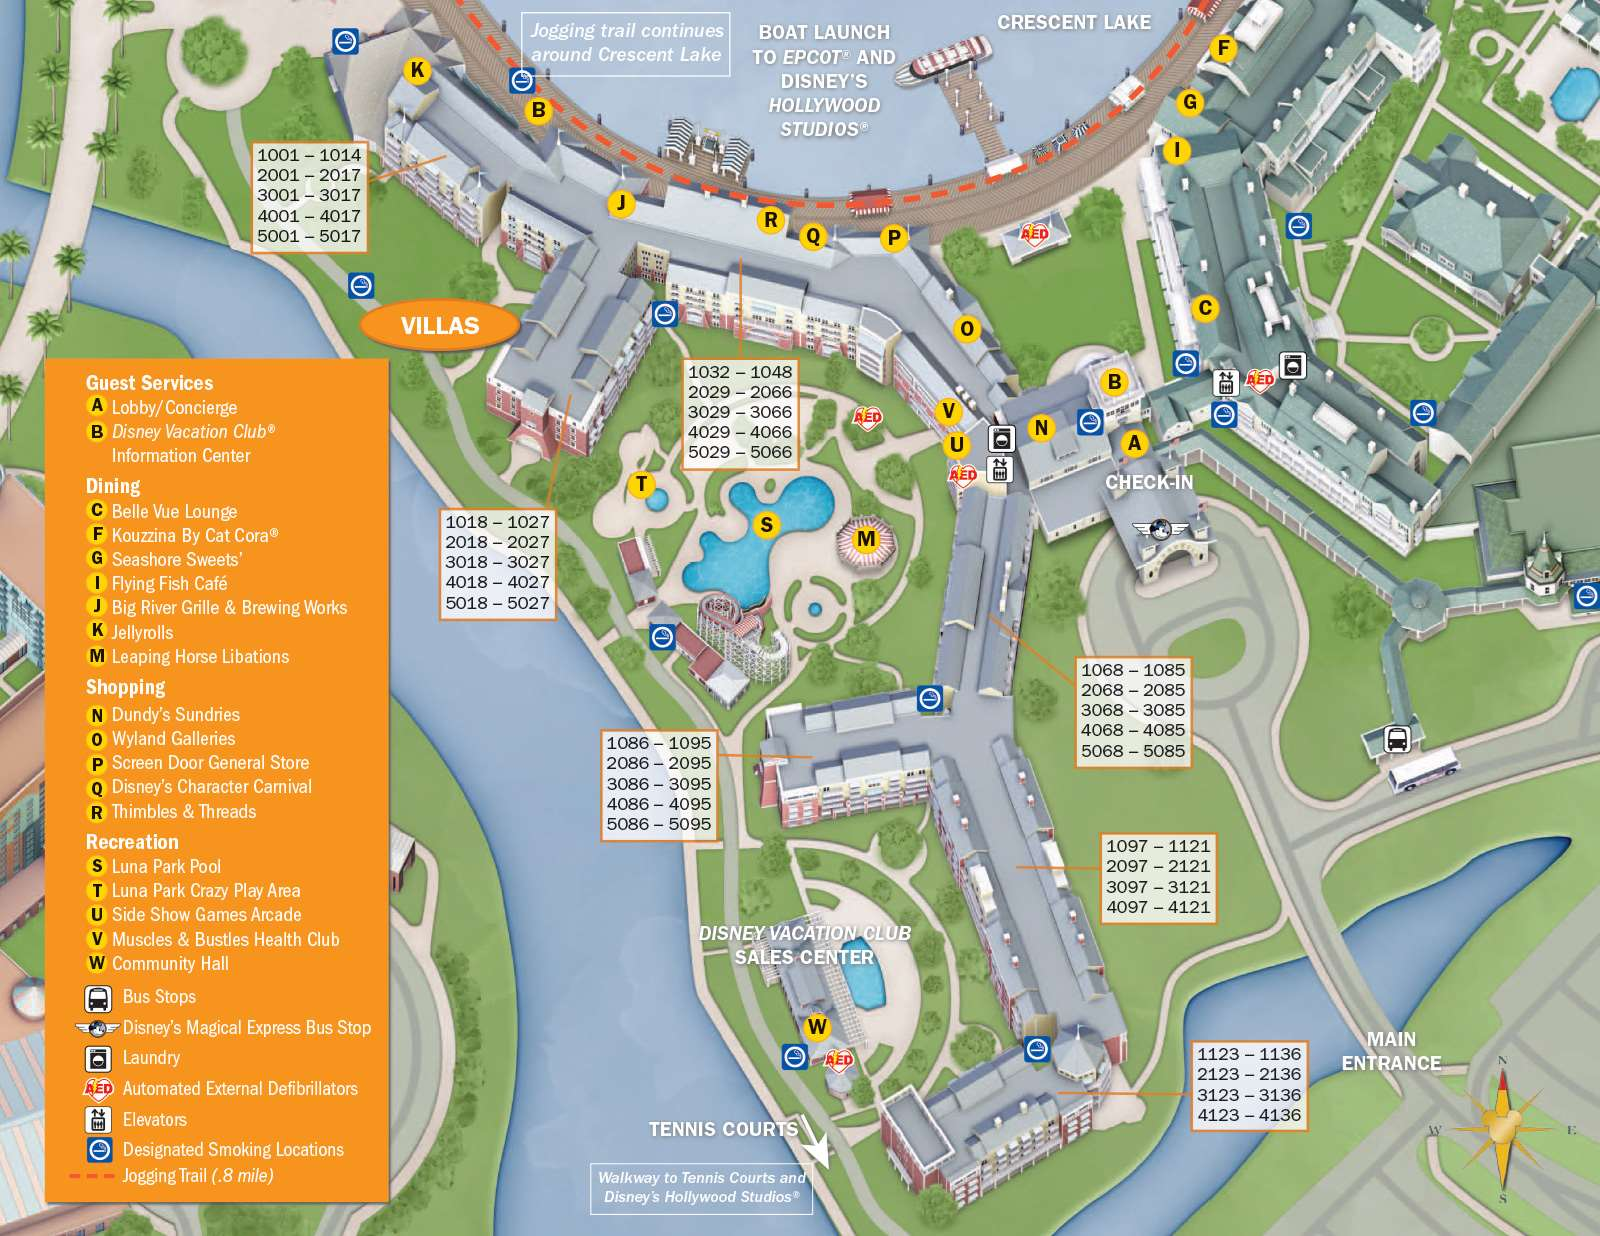 PHOTOS   New design of maps now at Walt Disney World resort hotels